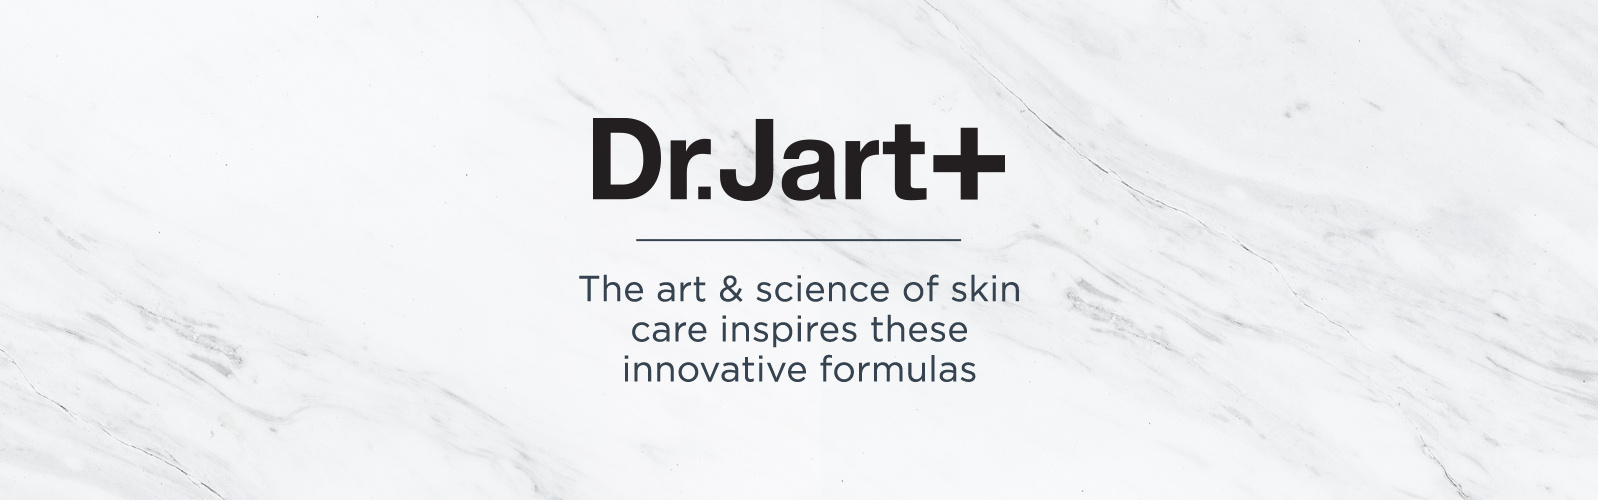 Dr. Jart+ The art & science of skin care inspires these innovative formulas